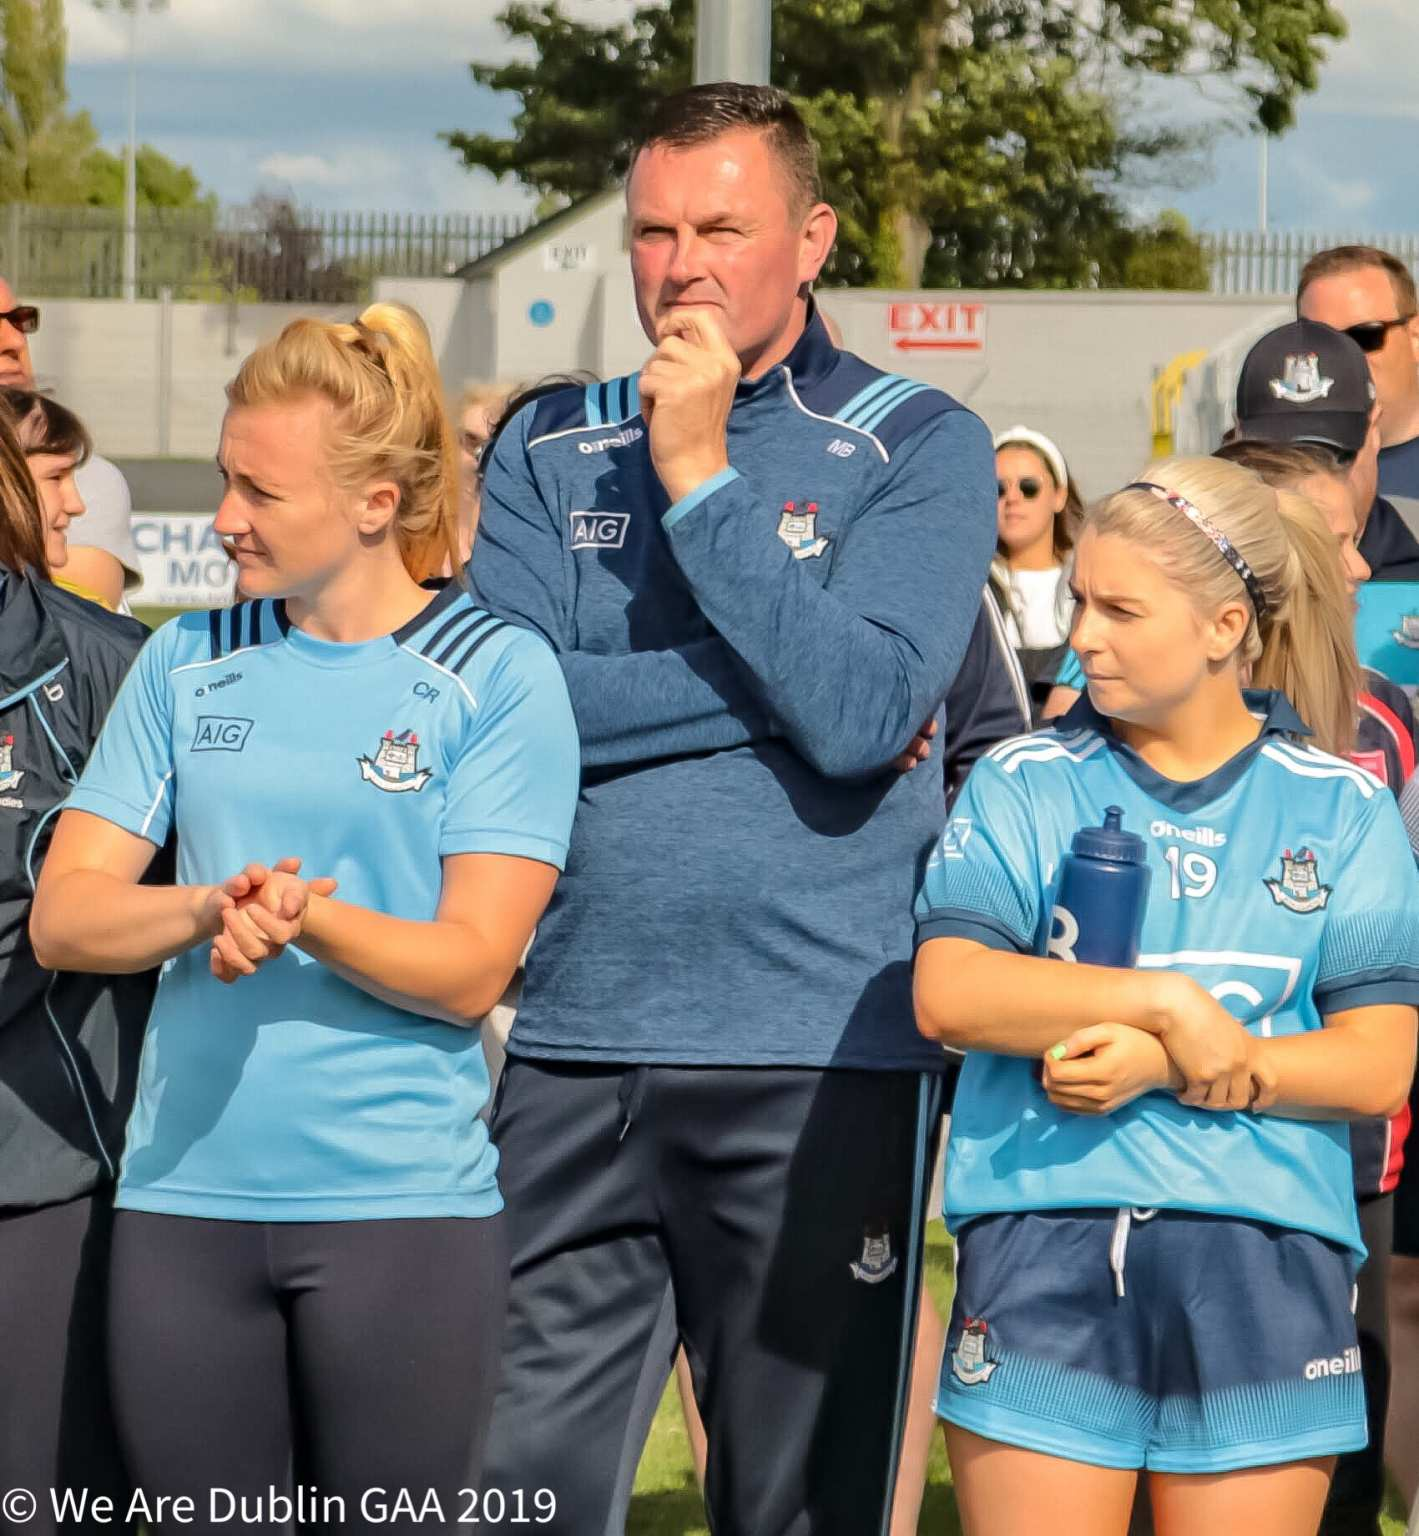 Dublin Senior Ladies Football manager Mick Bohan flanked by two players, Bohan says talk of Dublin's Dominance undermines the effort of the players.